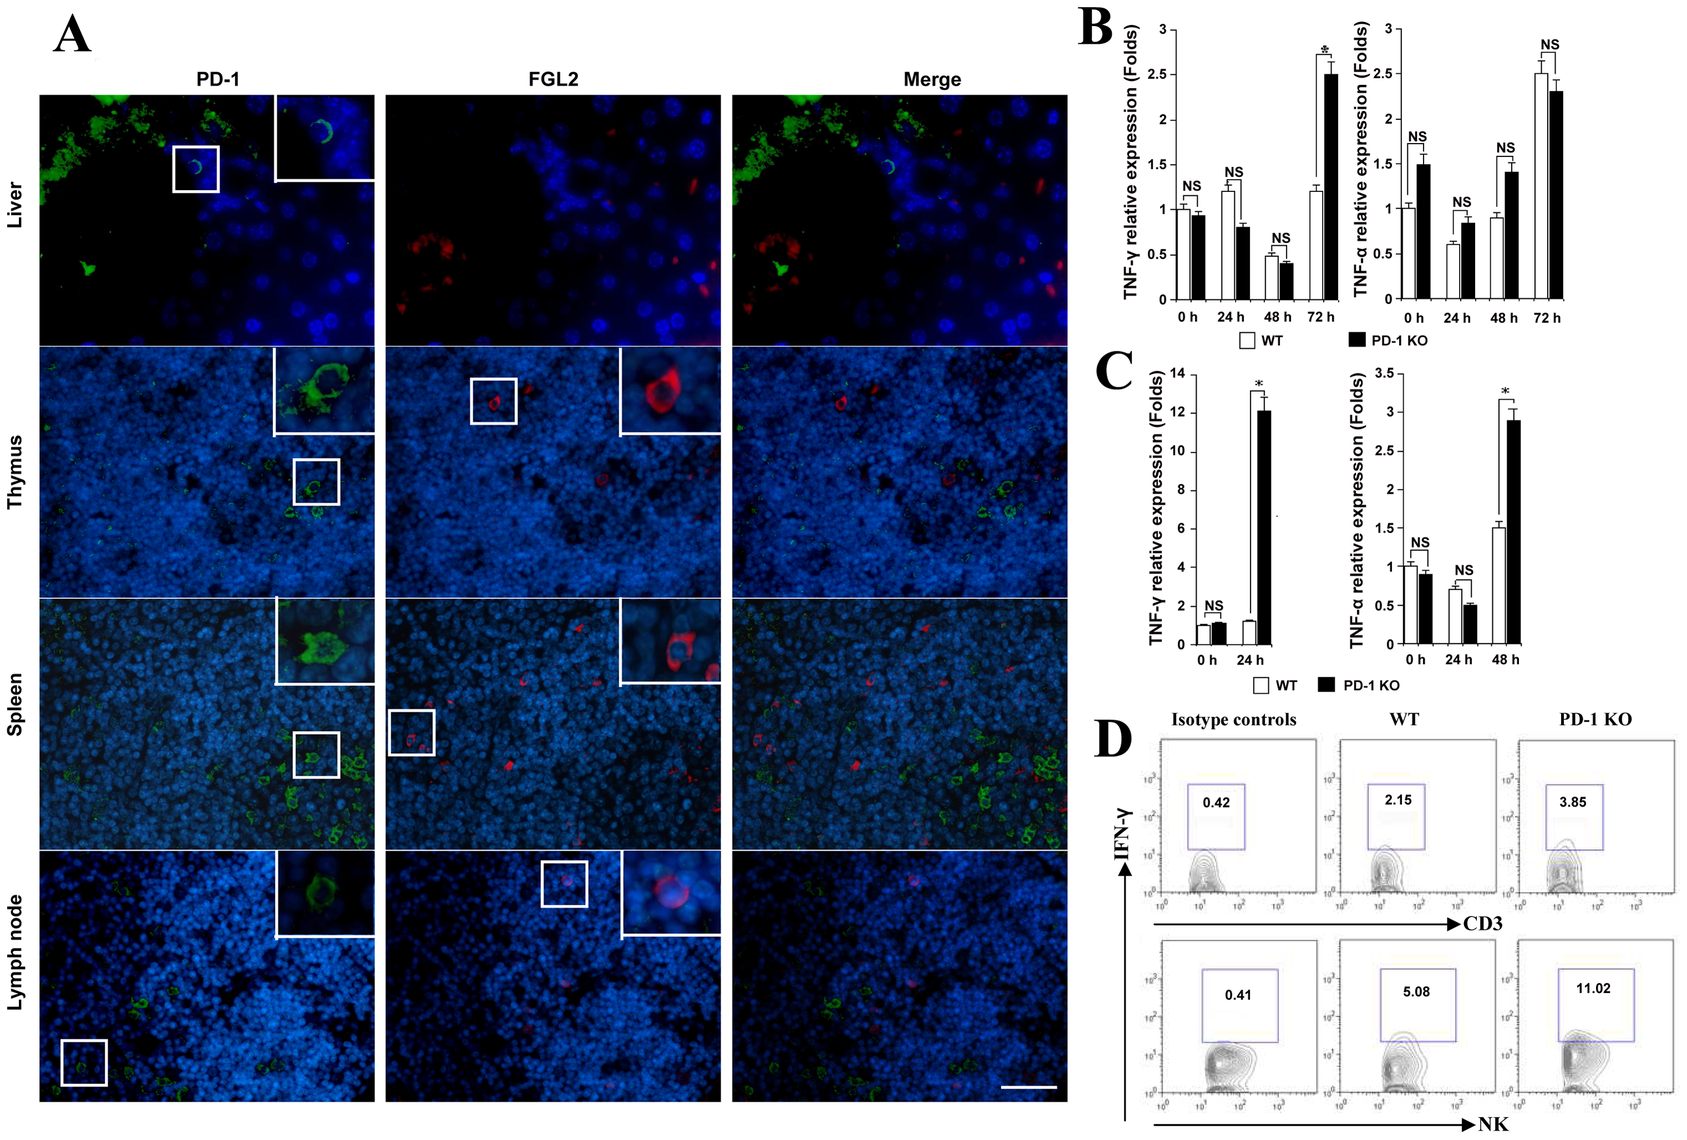 MHV-3 infection induced high levels of IFN-γ and TNF-α in PD-1-deficient mice.